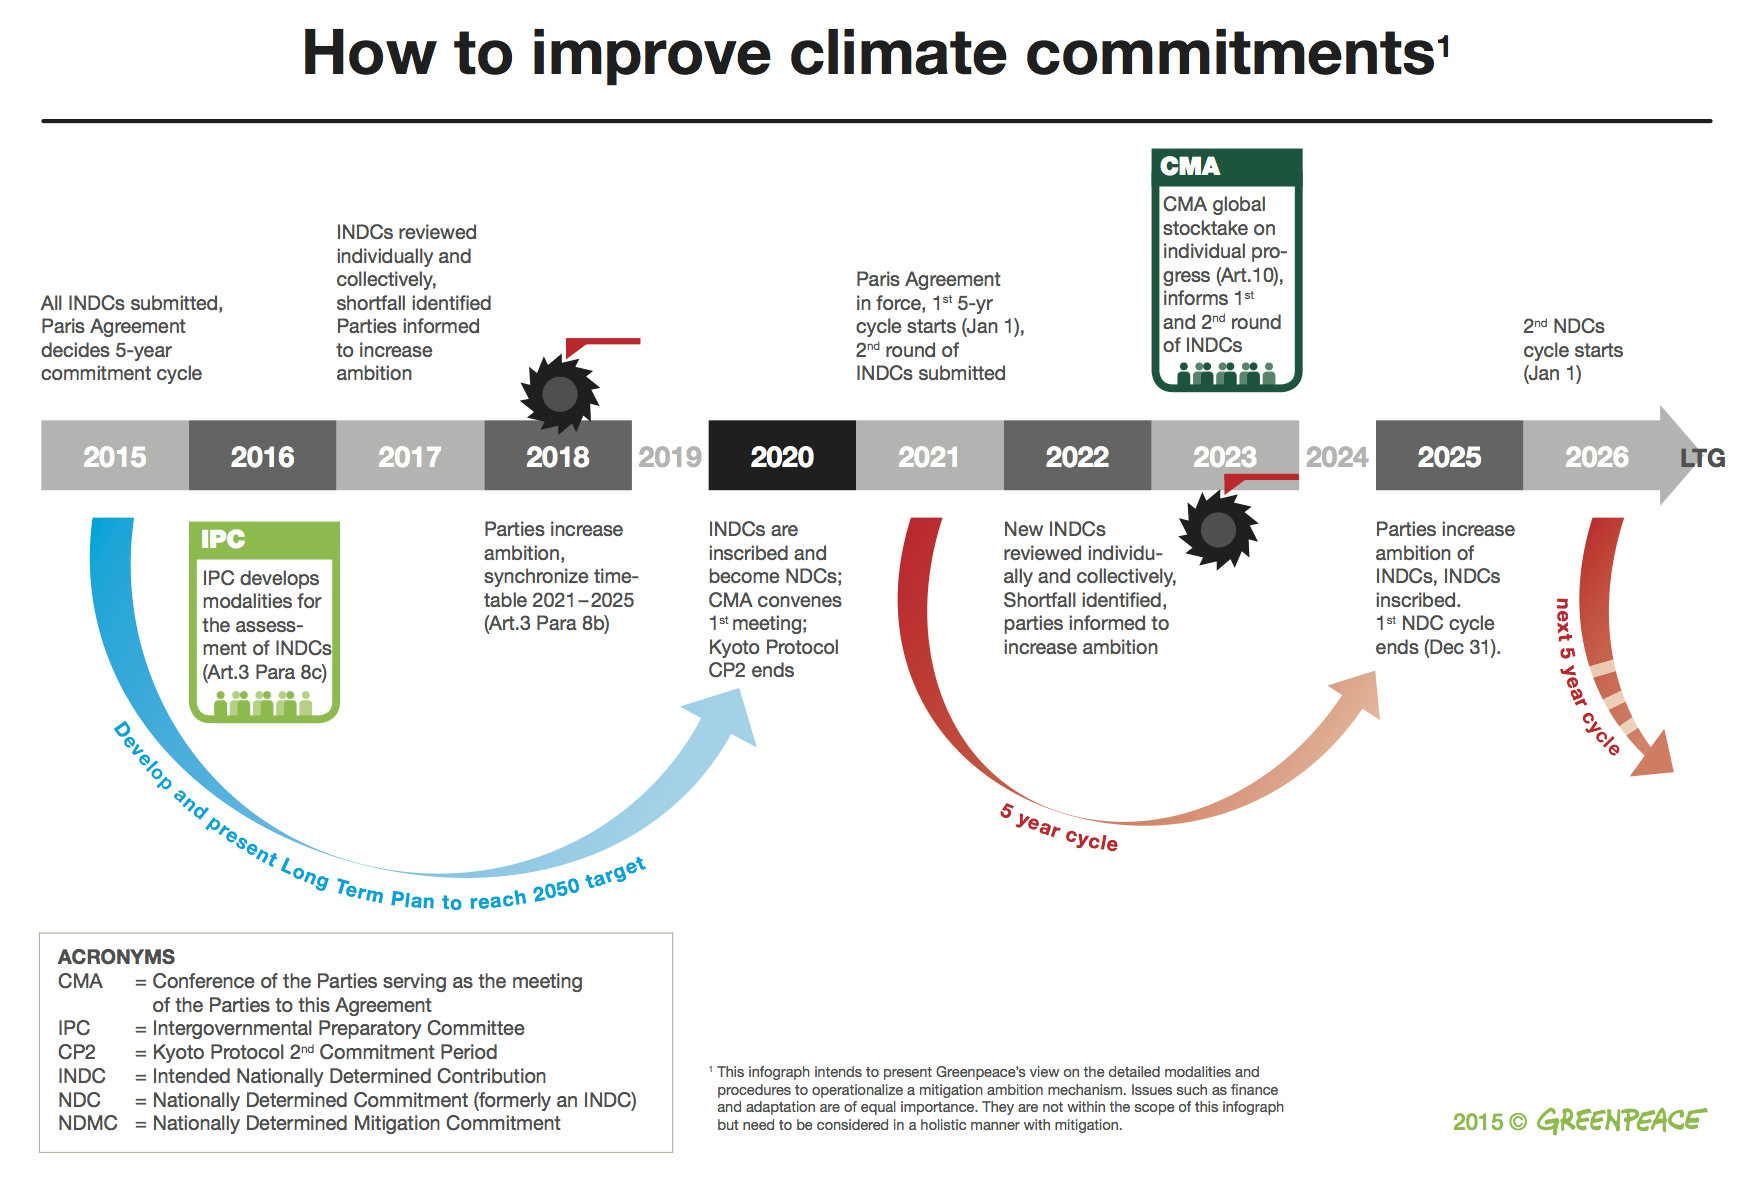 How to improve climate commitments. © Greenpeace